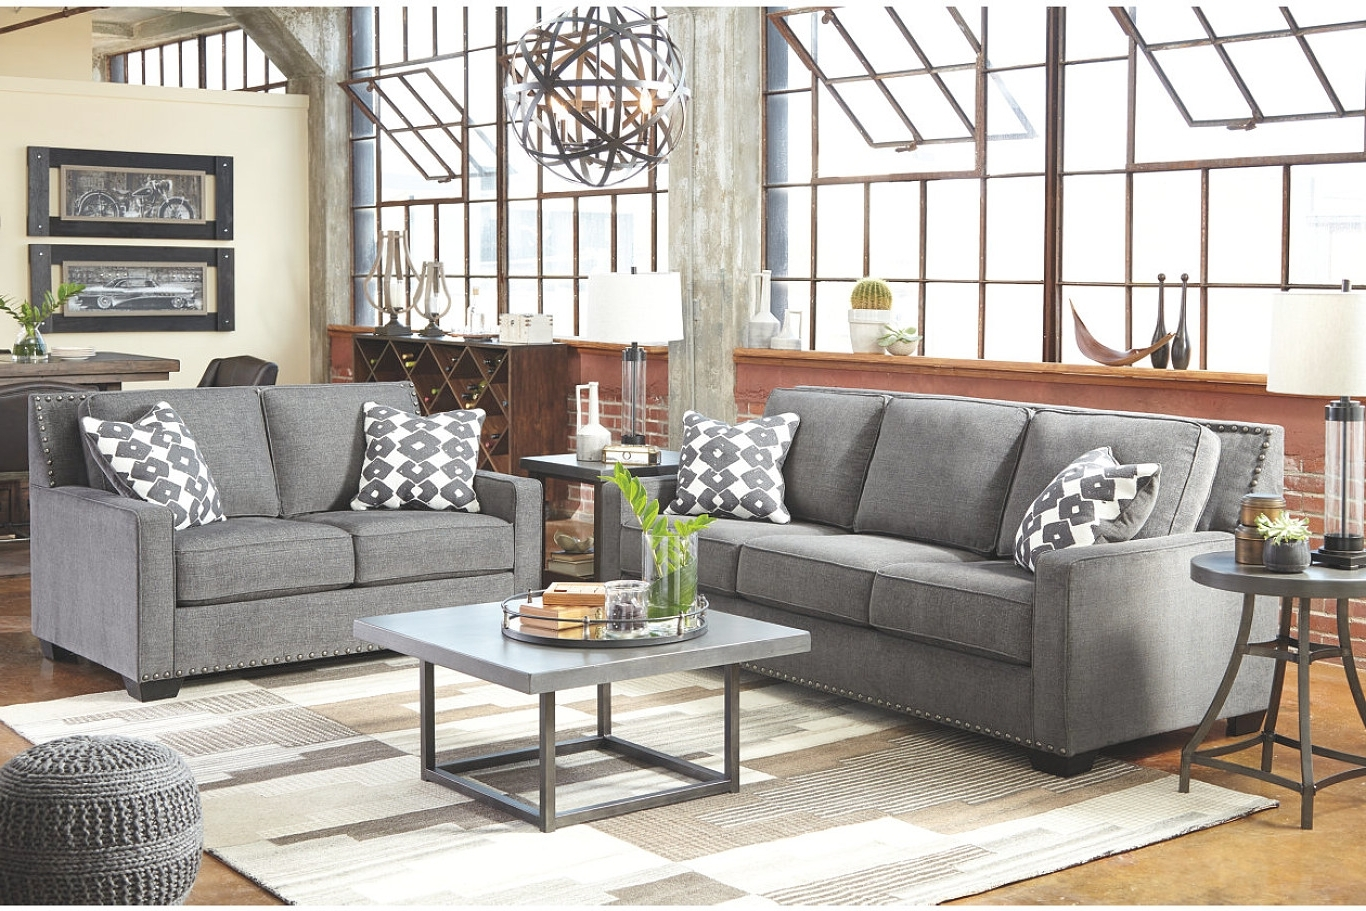 Well Known Discount Sofas Ashley Furniture Living Room Sets Sectionals Rent A Regarding Nebraska Furniture Mart Sectional Sofas (Gallery 11 of 15)